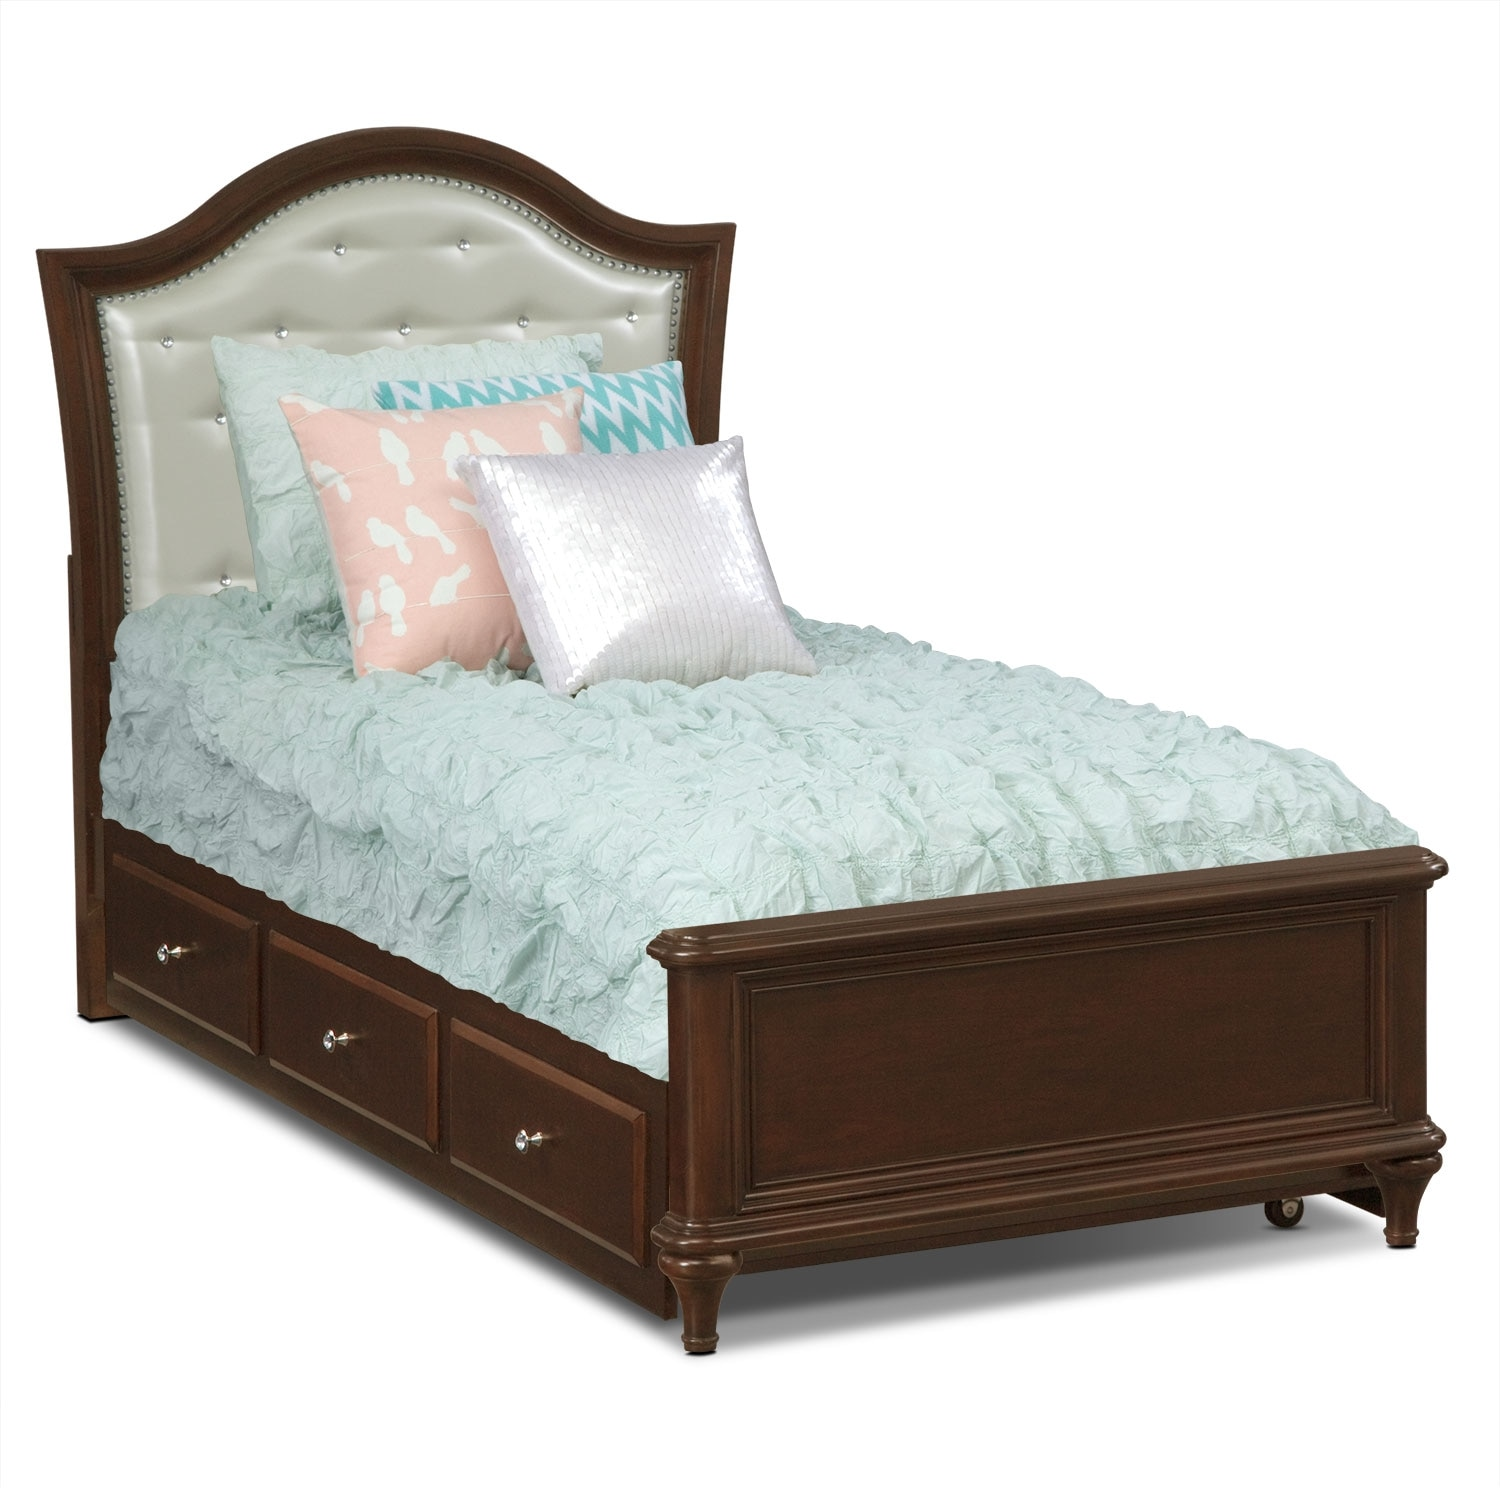 [Juliette Twin Bed with Trundle]